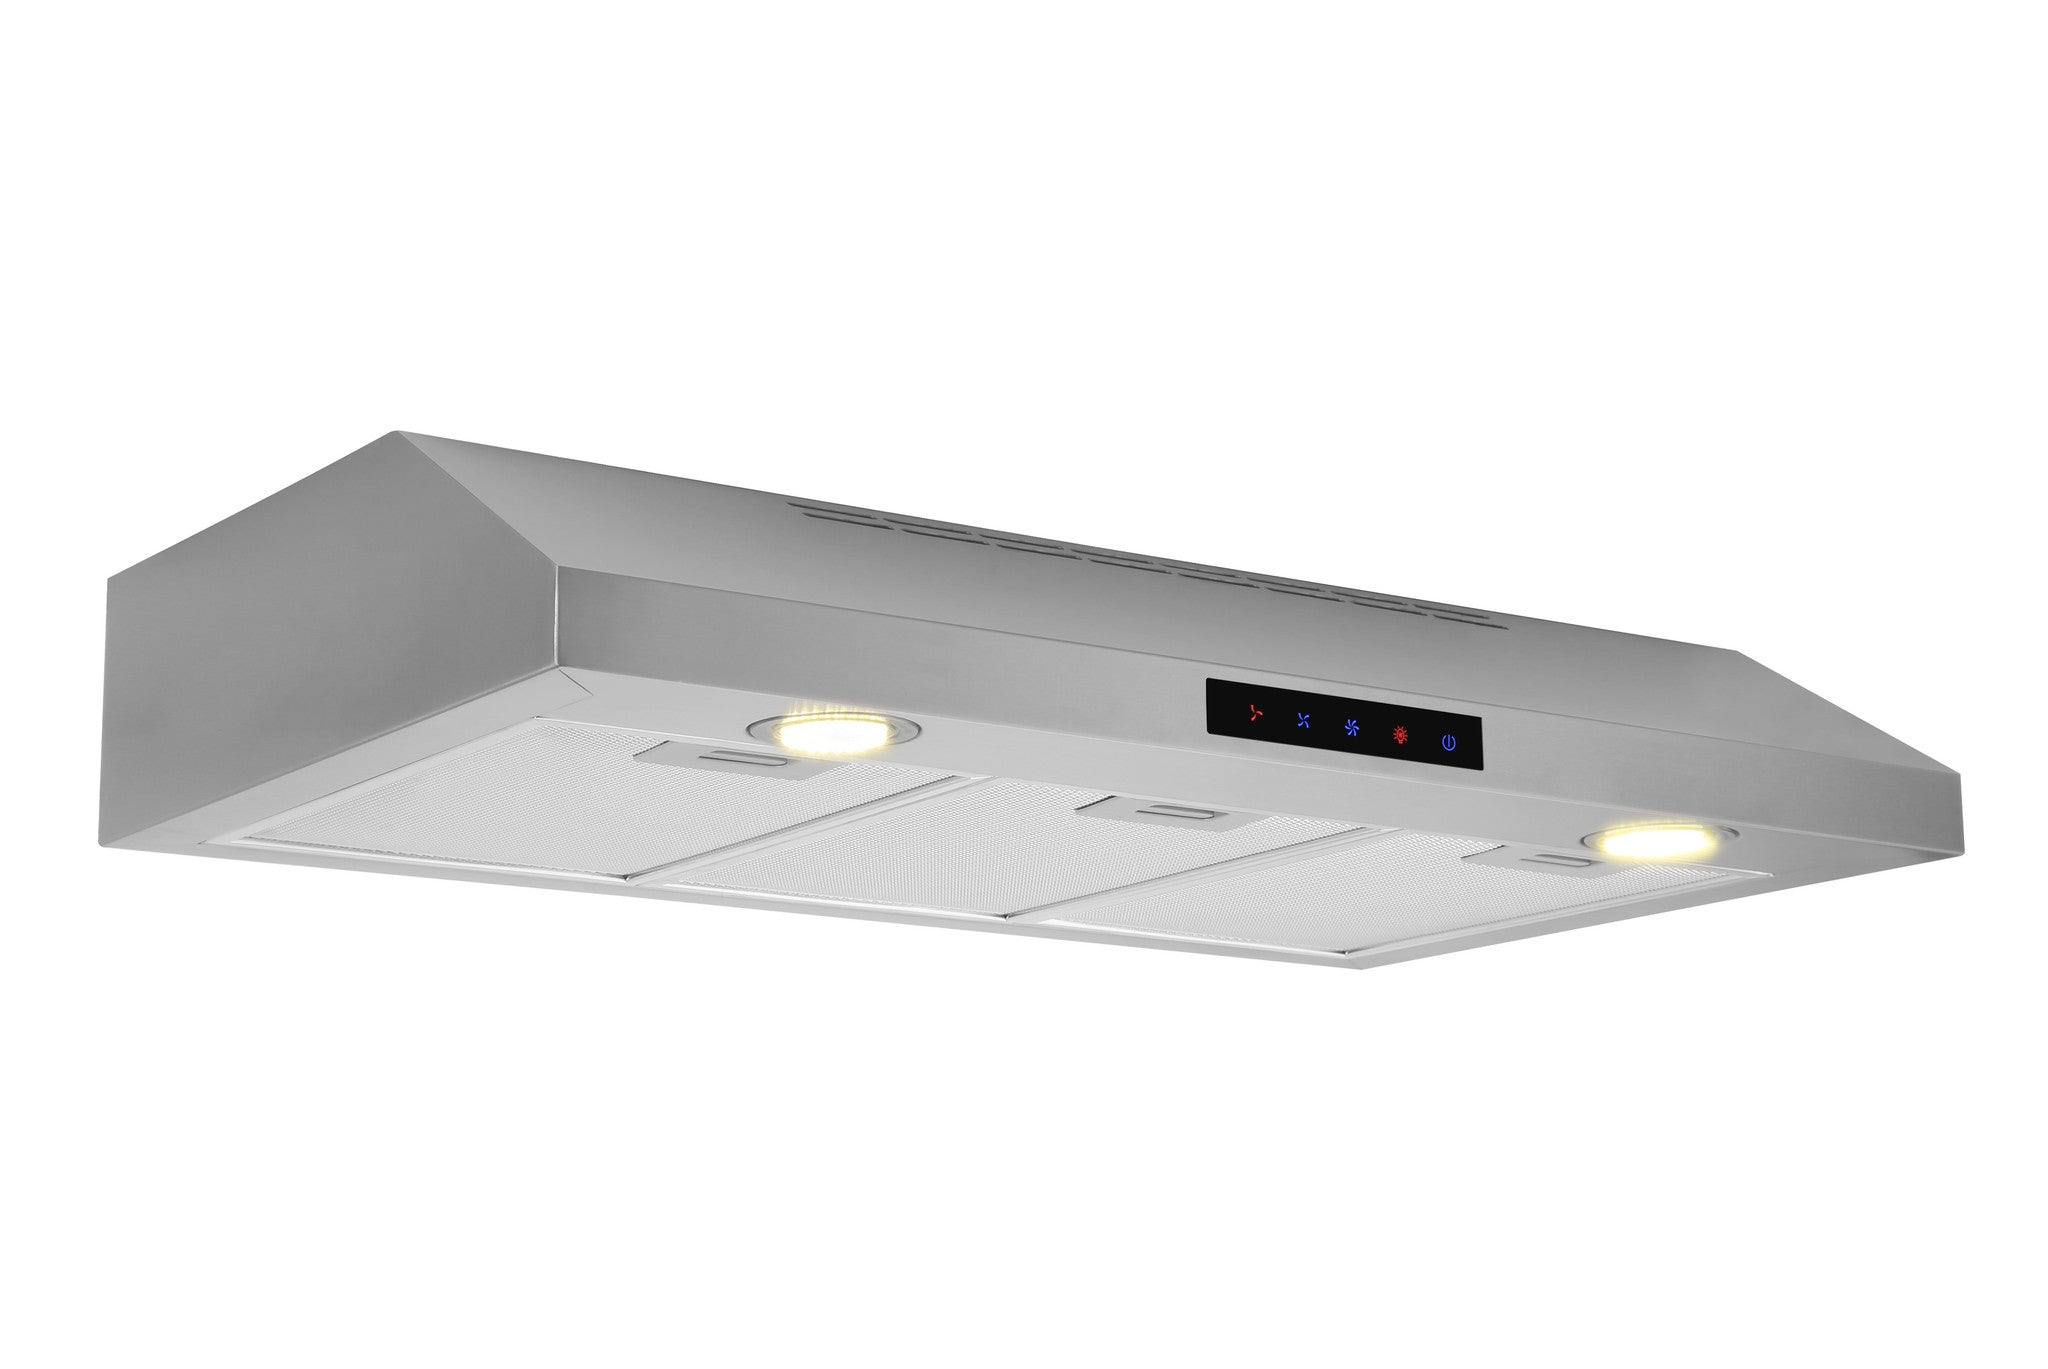 Kitchen Bath Collection Wuc Led Stainless Steel Under Cabinet Range Hood